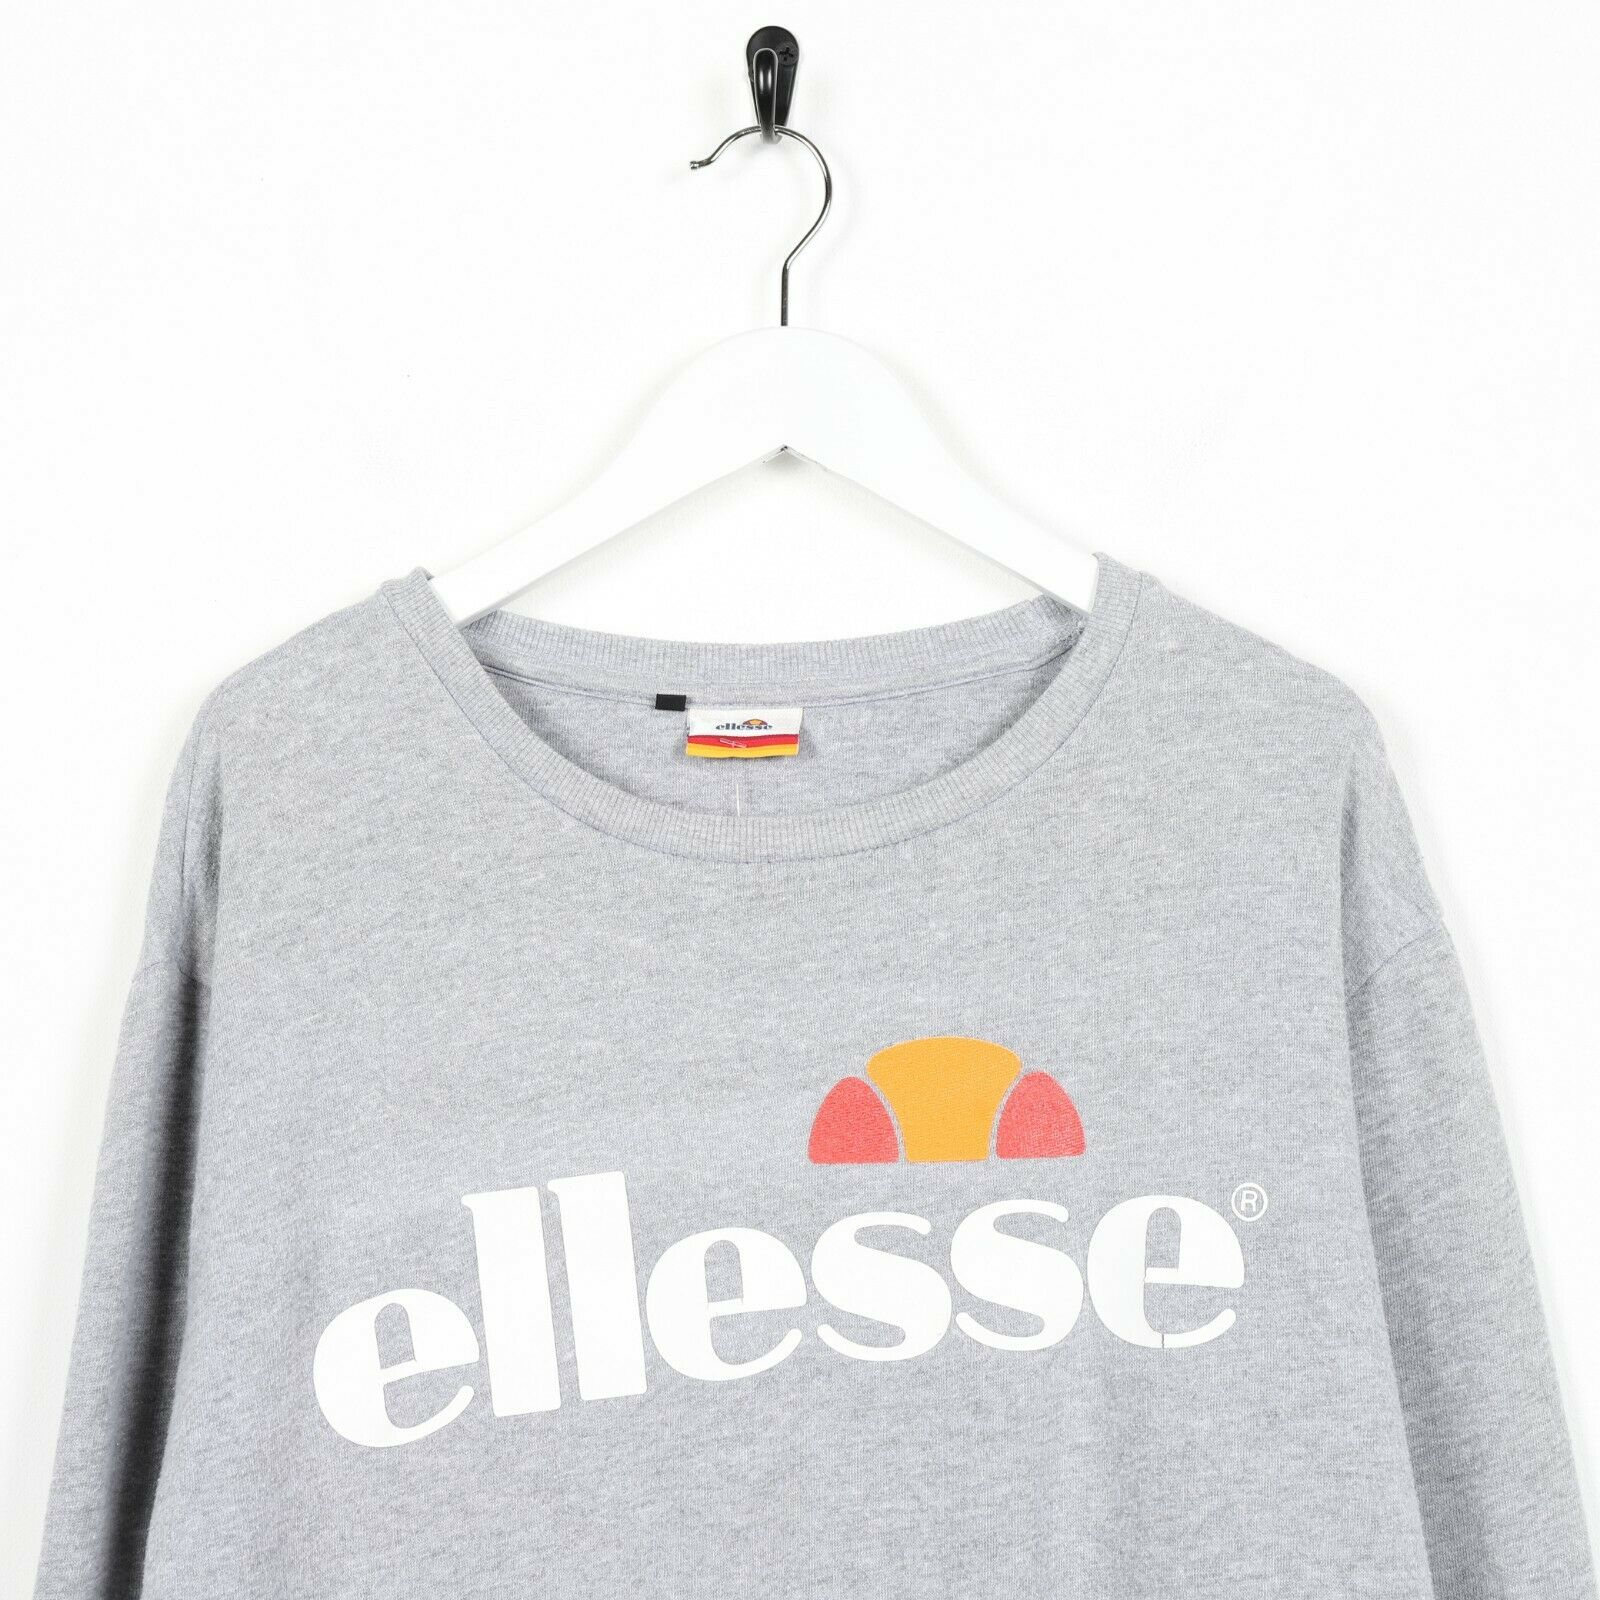 Vintage ELLESSE Big Logo Sweatshirt Jumper Grey | Large L